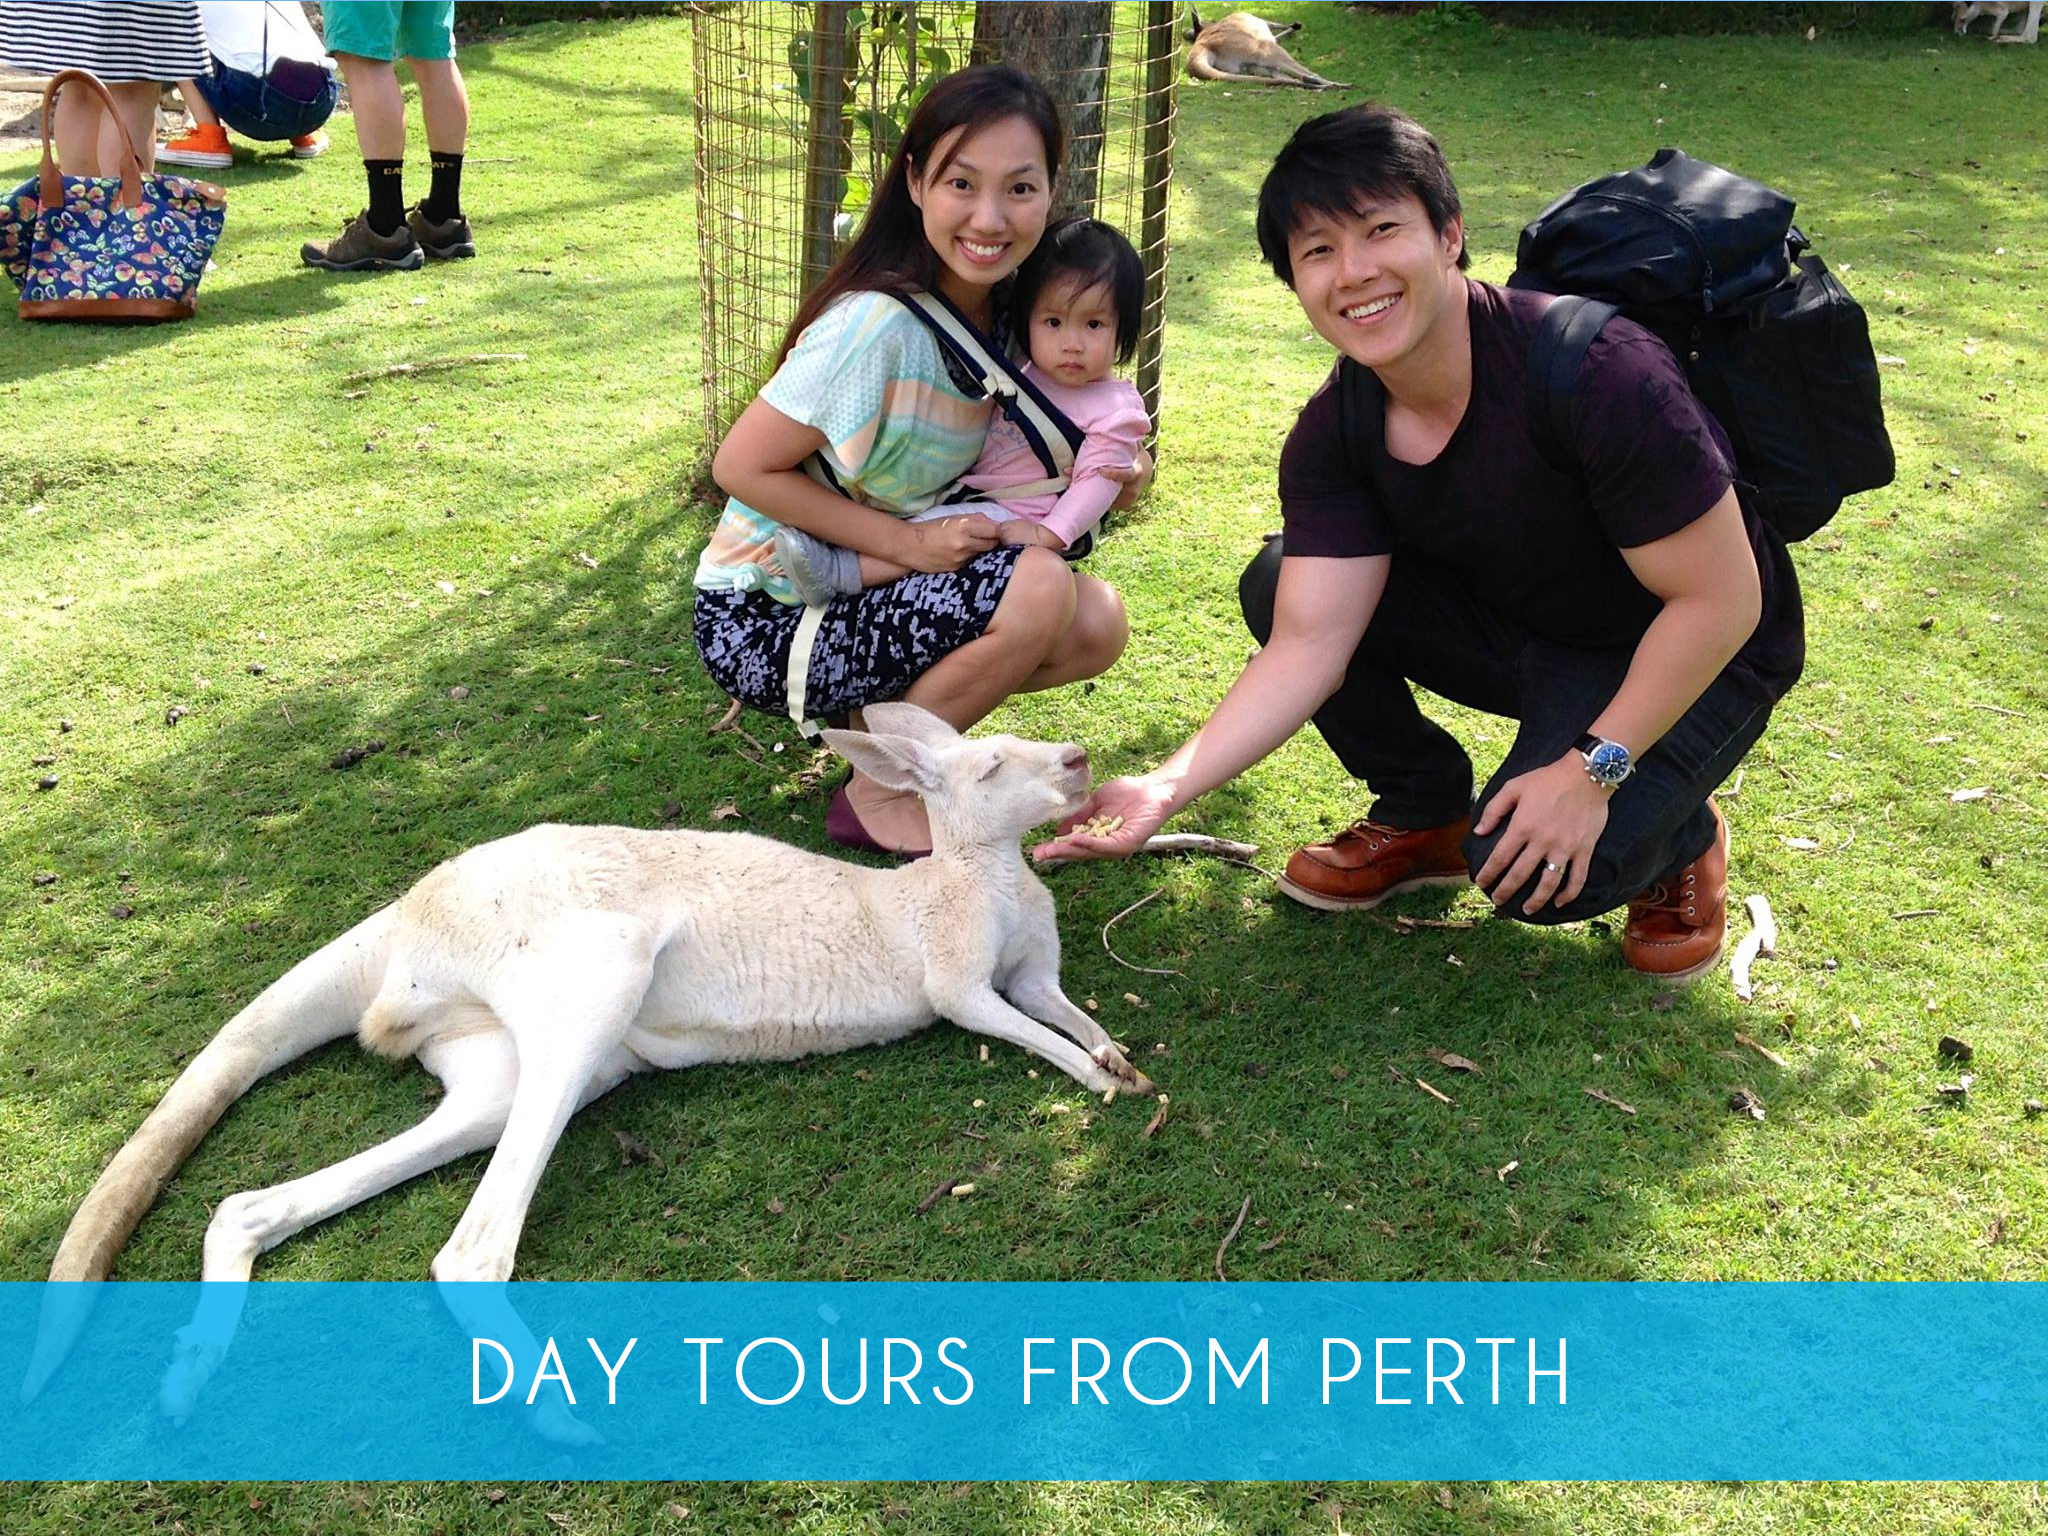 Day tours from Perth   Catch the coach from Perth to visit Penguin Island and take in some other uniquely Western Australian experiences and wildlife all in the same day.  Adults from $179   MORE INFO